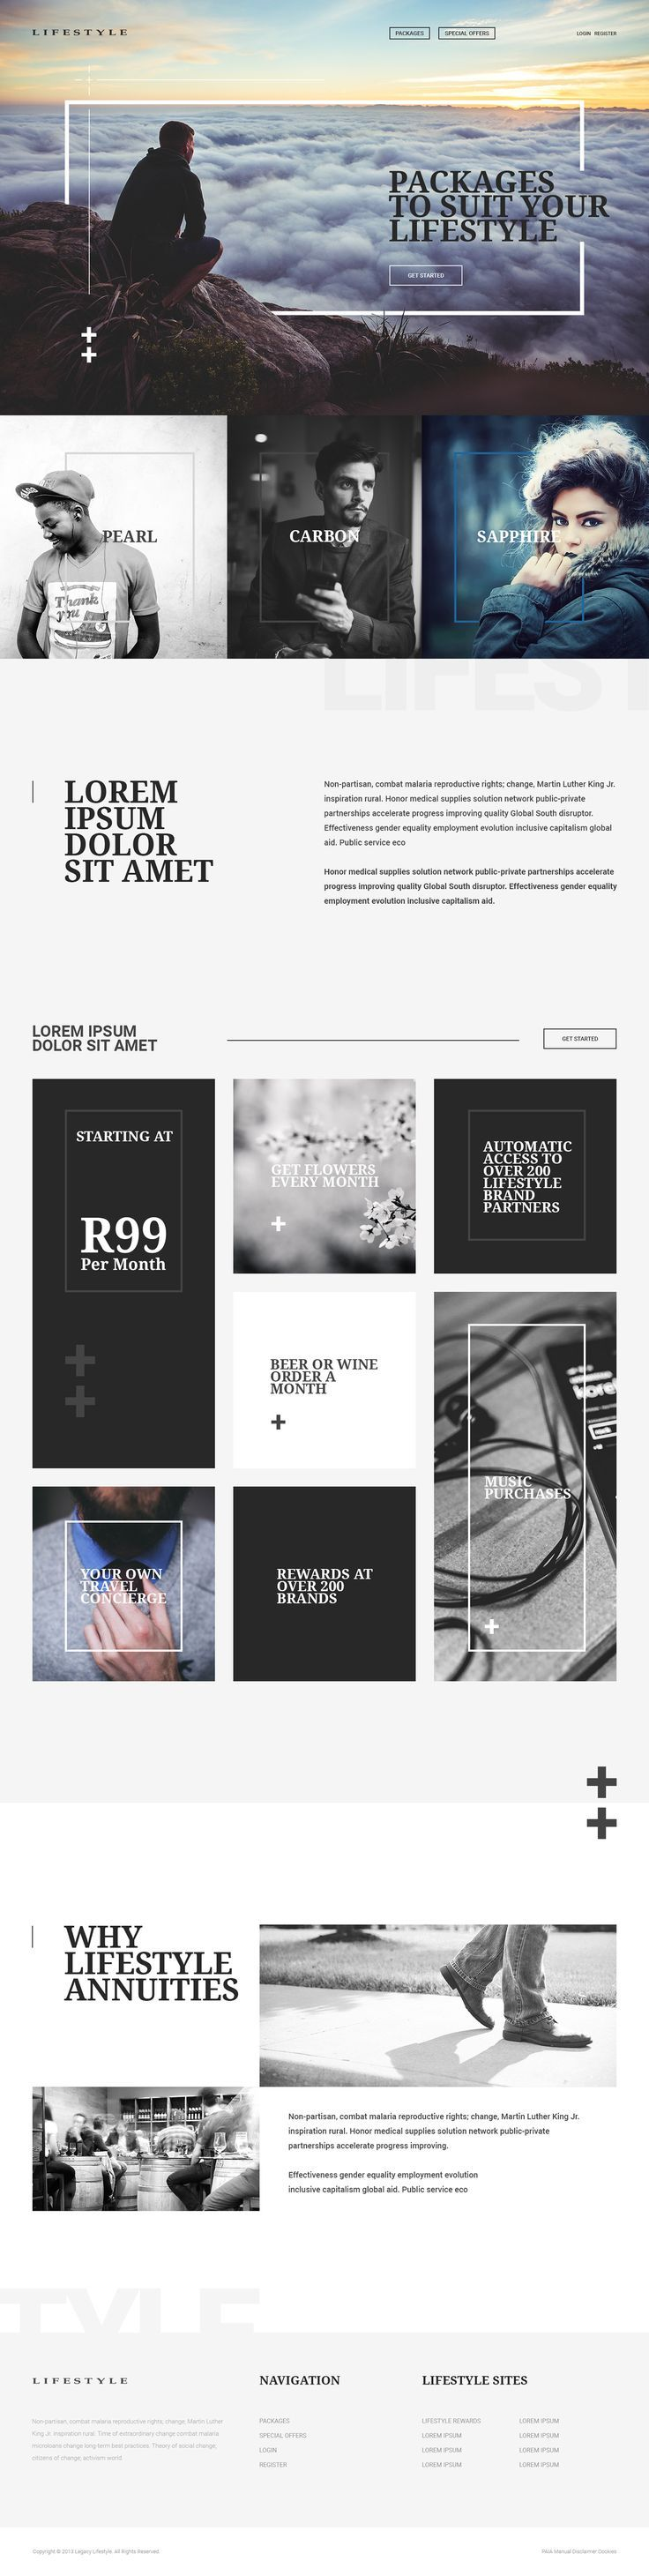 Grid Portfolio Website design Collection. = = = FREE CONSULTATION! Get similar web design service @http://www.smallstereo.com